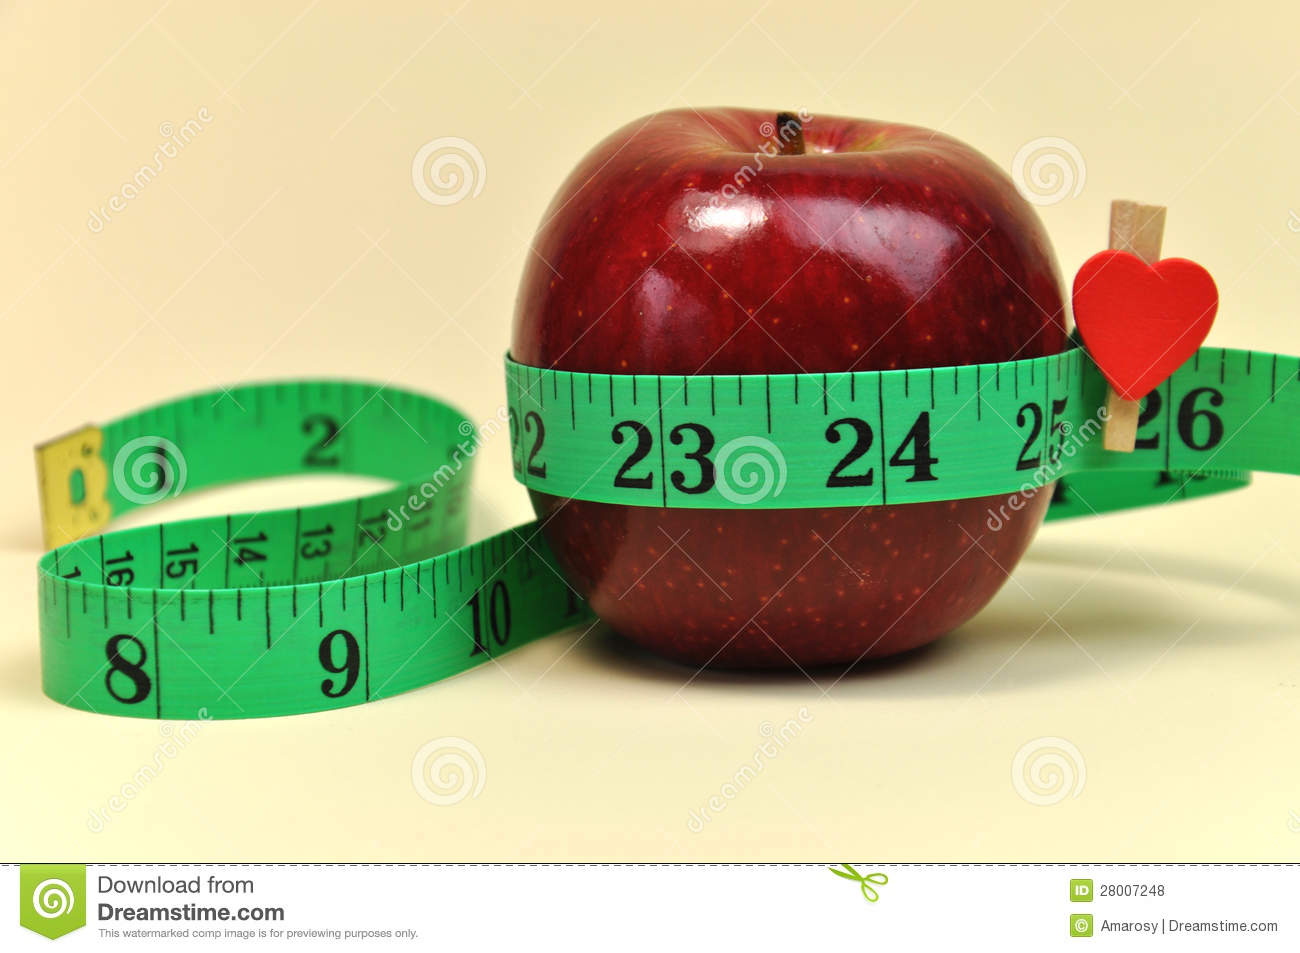 World's Commonest New Year's Resolution: Weight Loss- Let's Explore